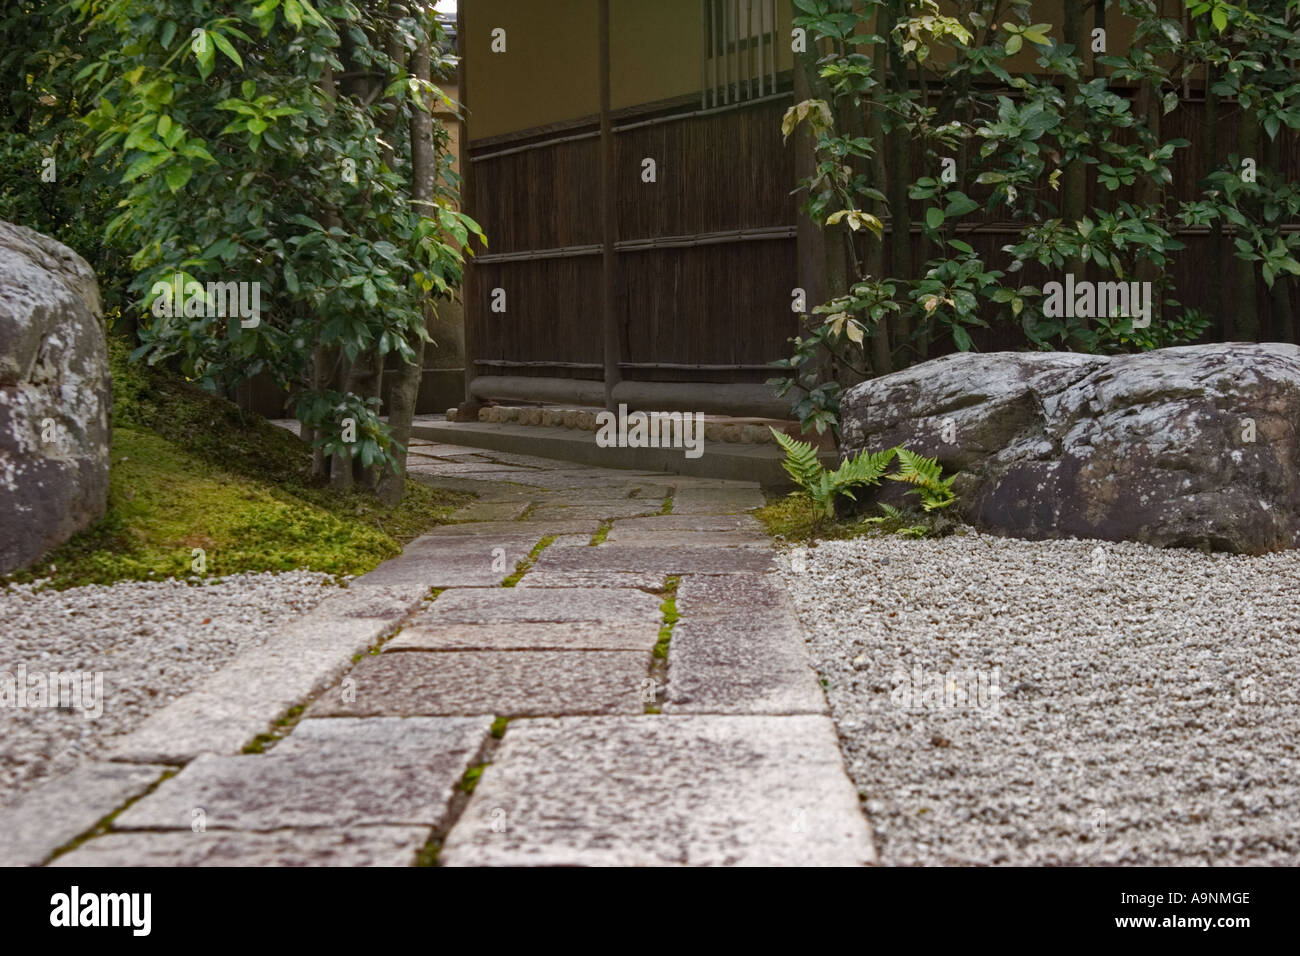 Stone path at Korin-in, which is a subtemple of Daitokuji Temple, Kyoto, Japan - Stock Image